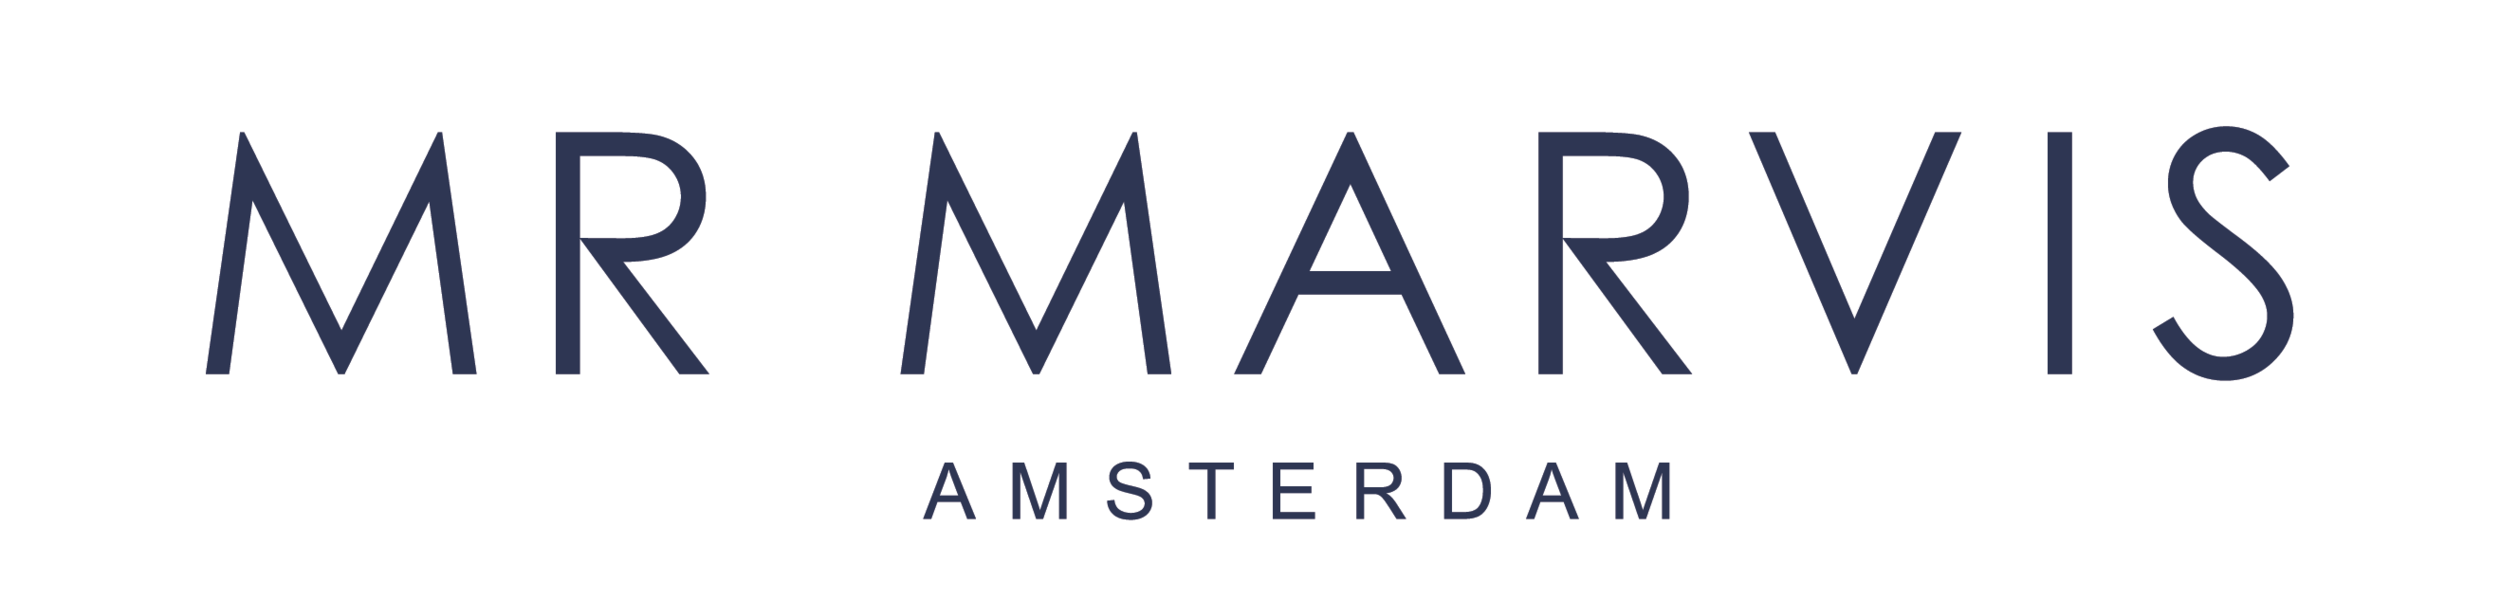 LOGO_MR_MARVIS_ams_blue_boxed.png